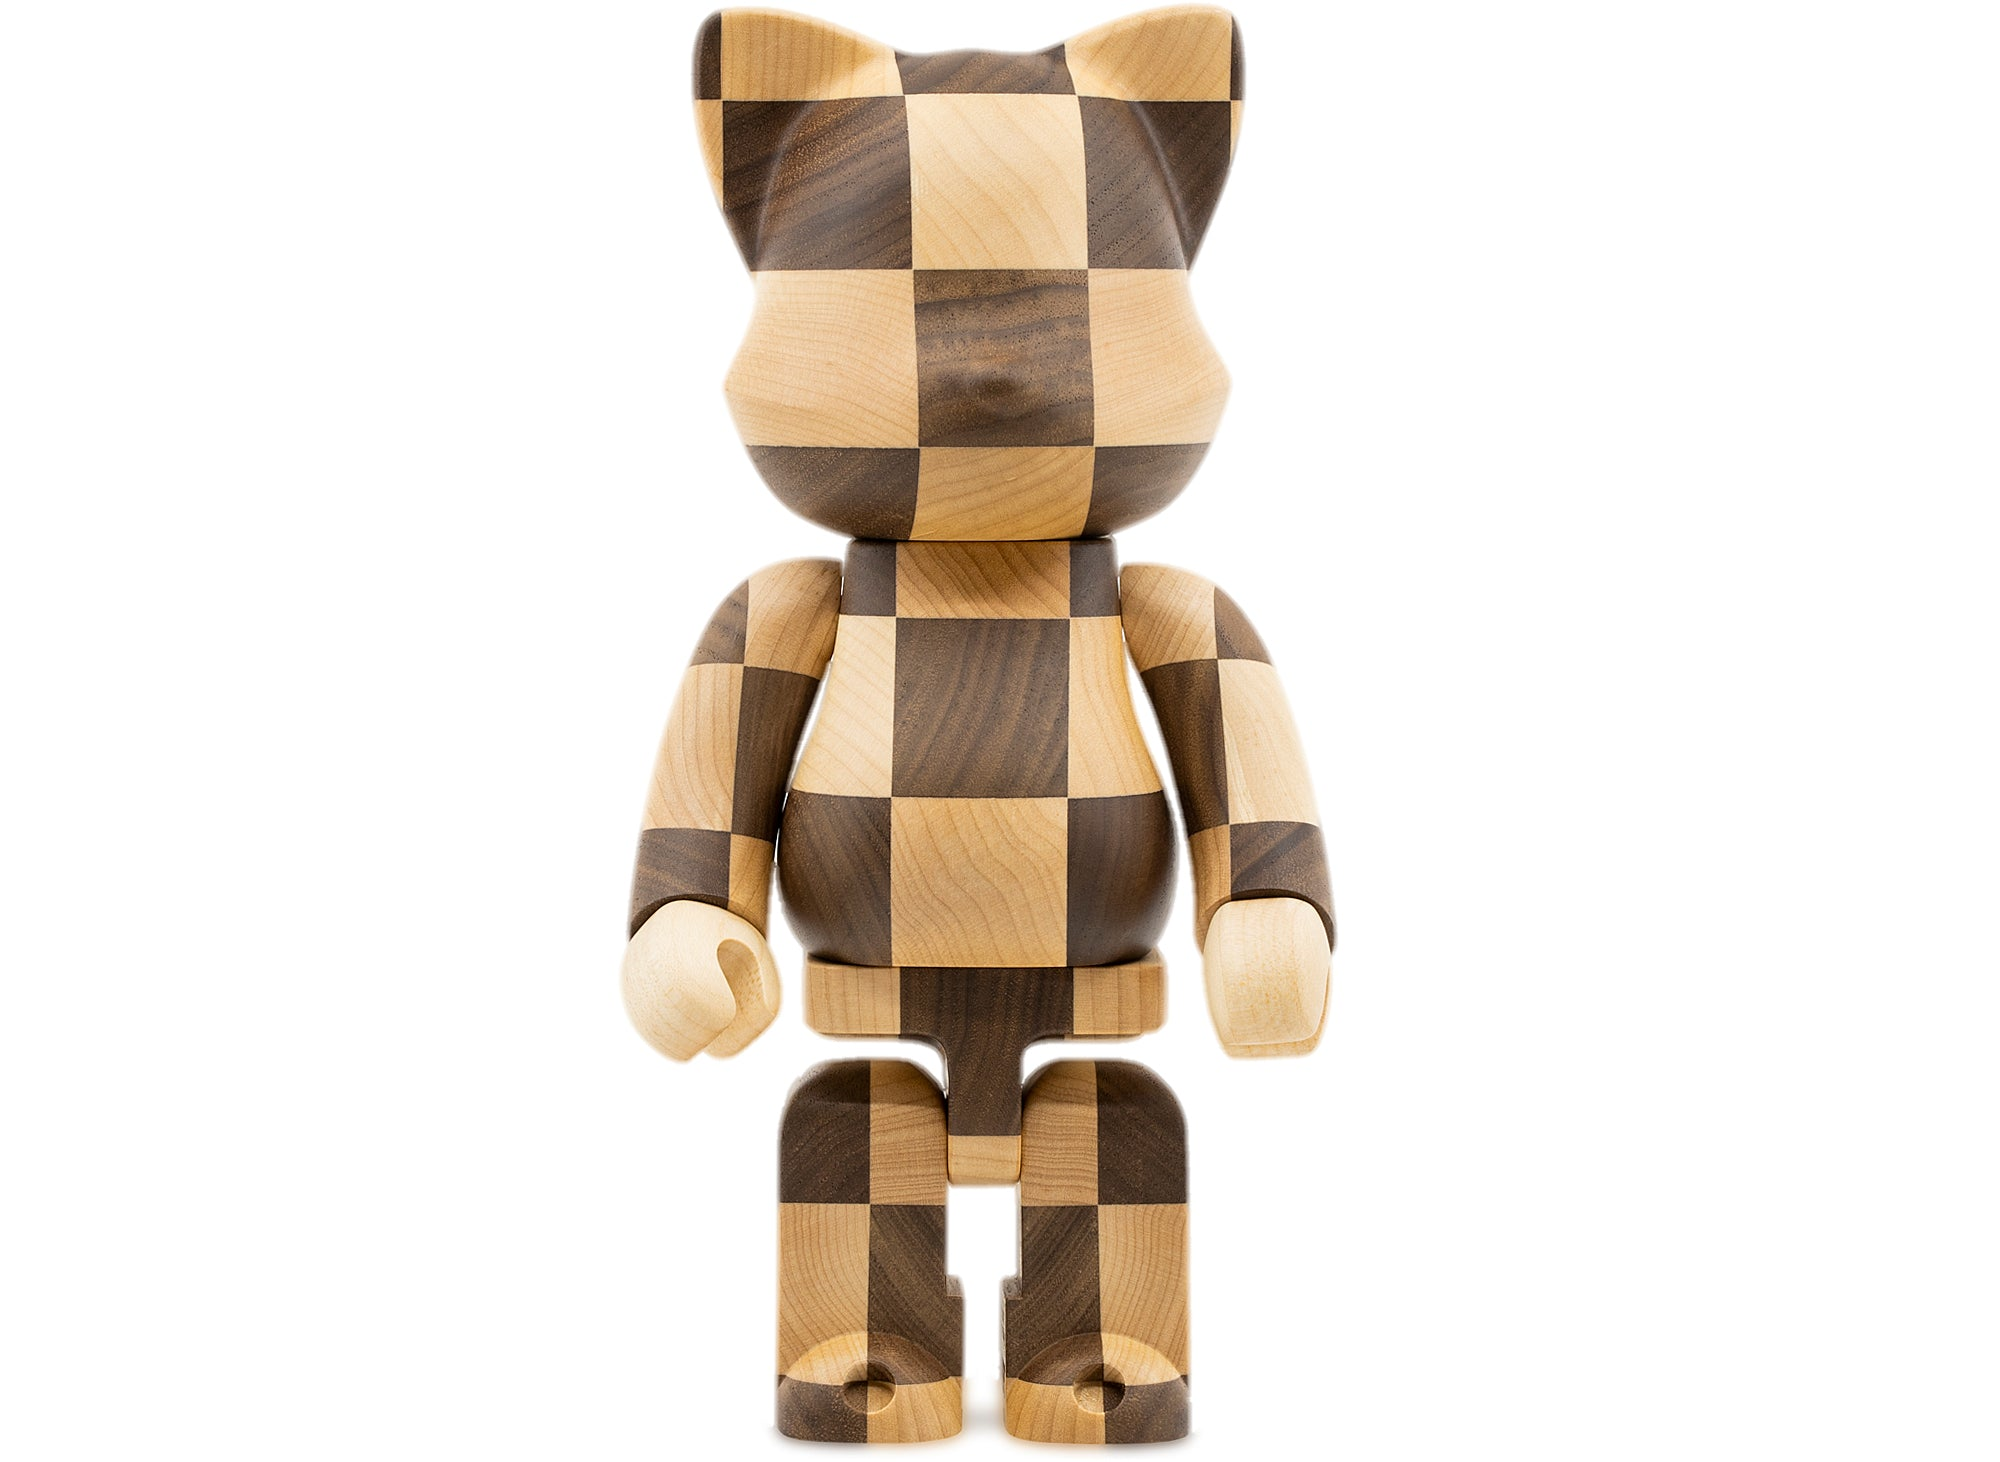 Medicom Toy BE@RBRICK Karimoku NY@BRICK Chess 400% xld